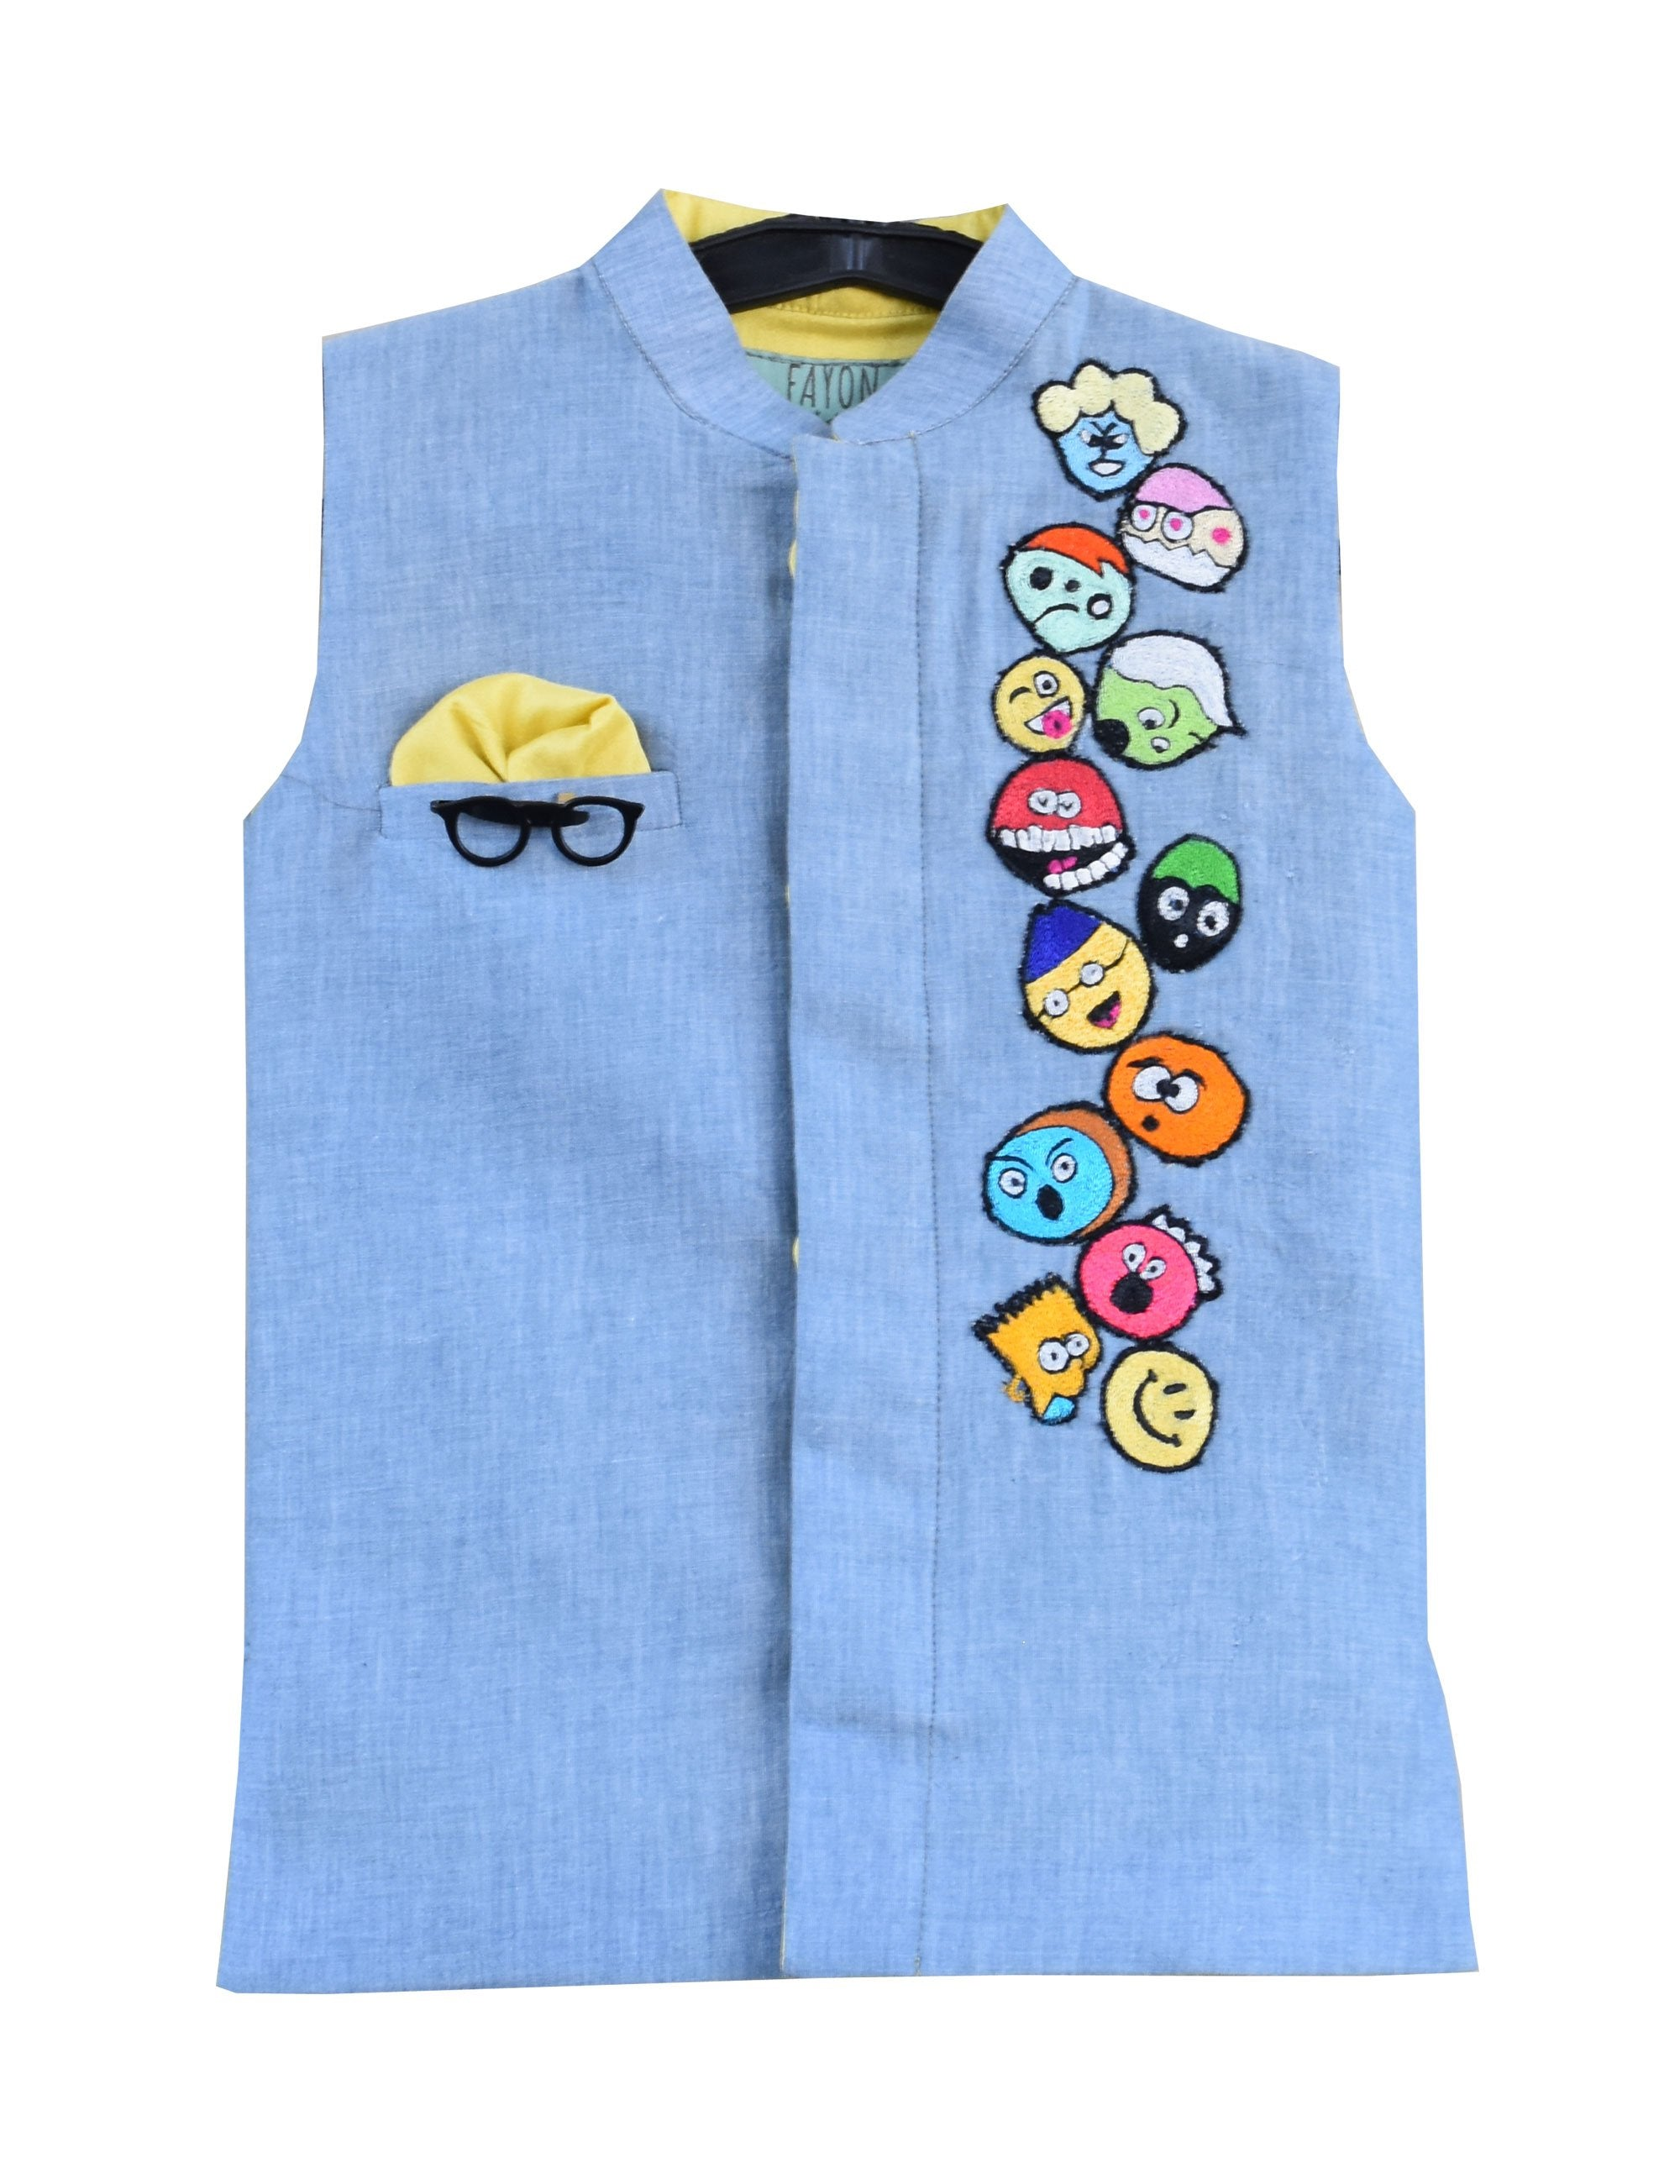 Linen Nehru Jacket with Patches in Pink Colour for Boys